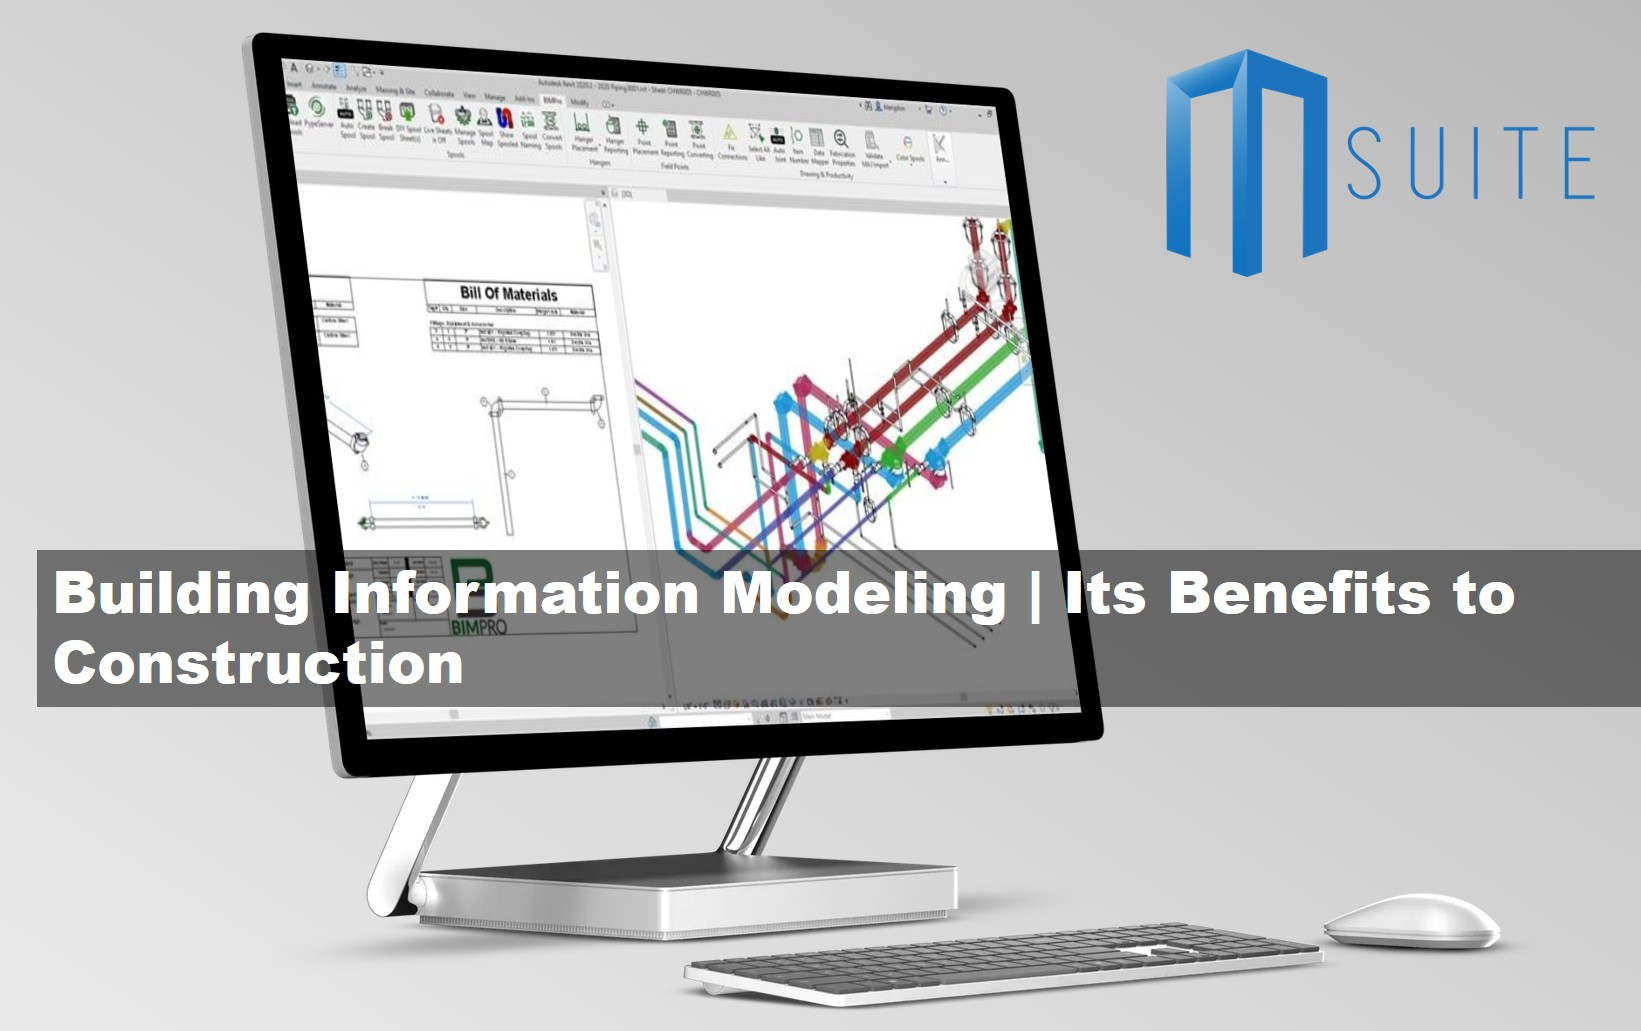 Building Information Modeling | Its Benefits to Construction